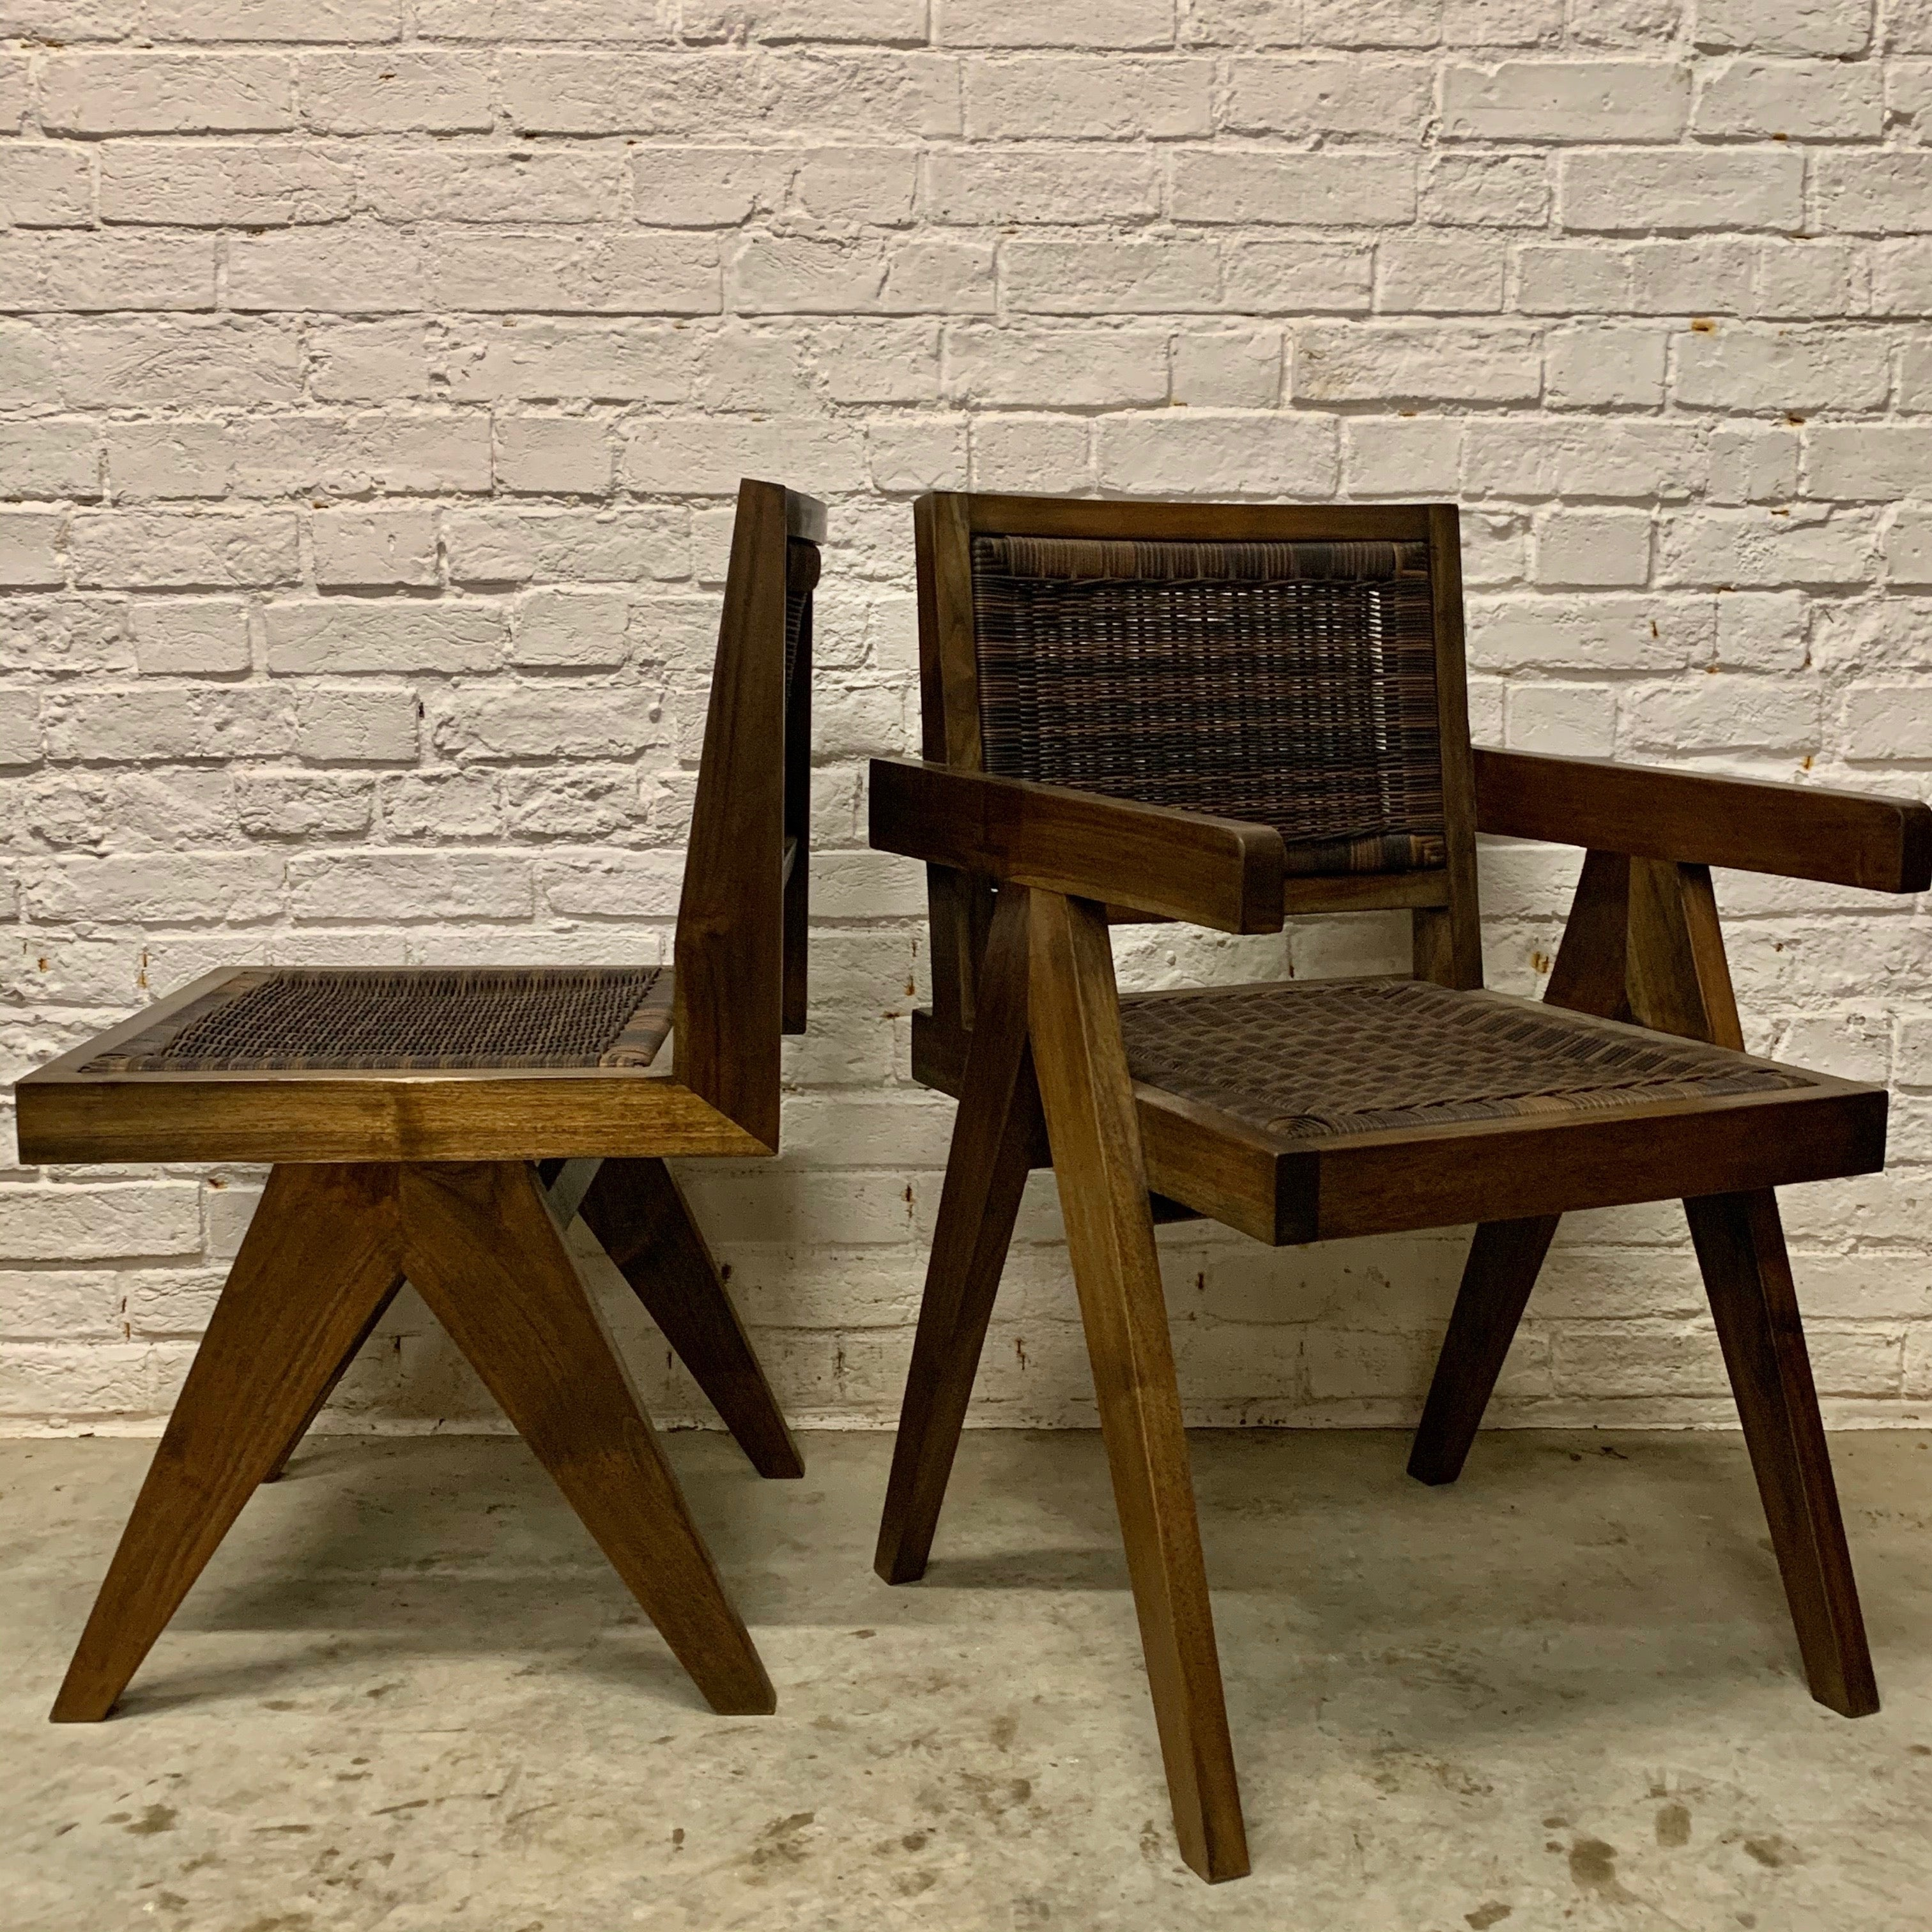 TEAK AND WICKER DINING CHAIR